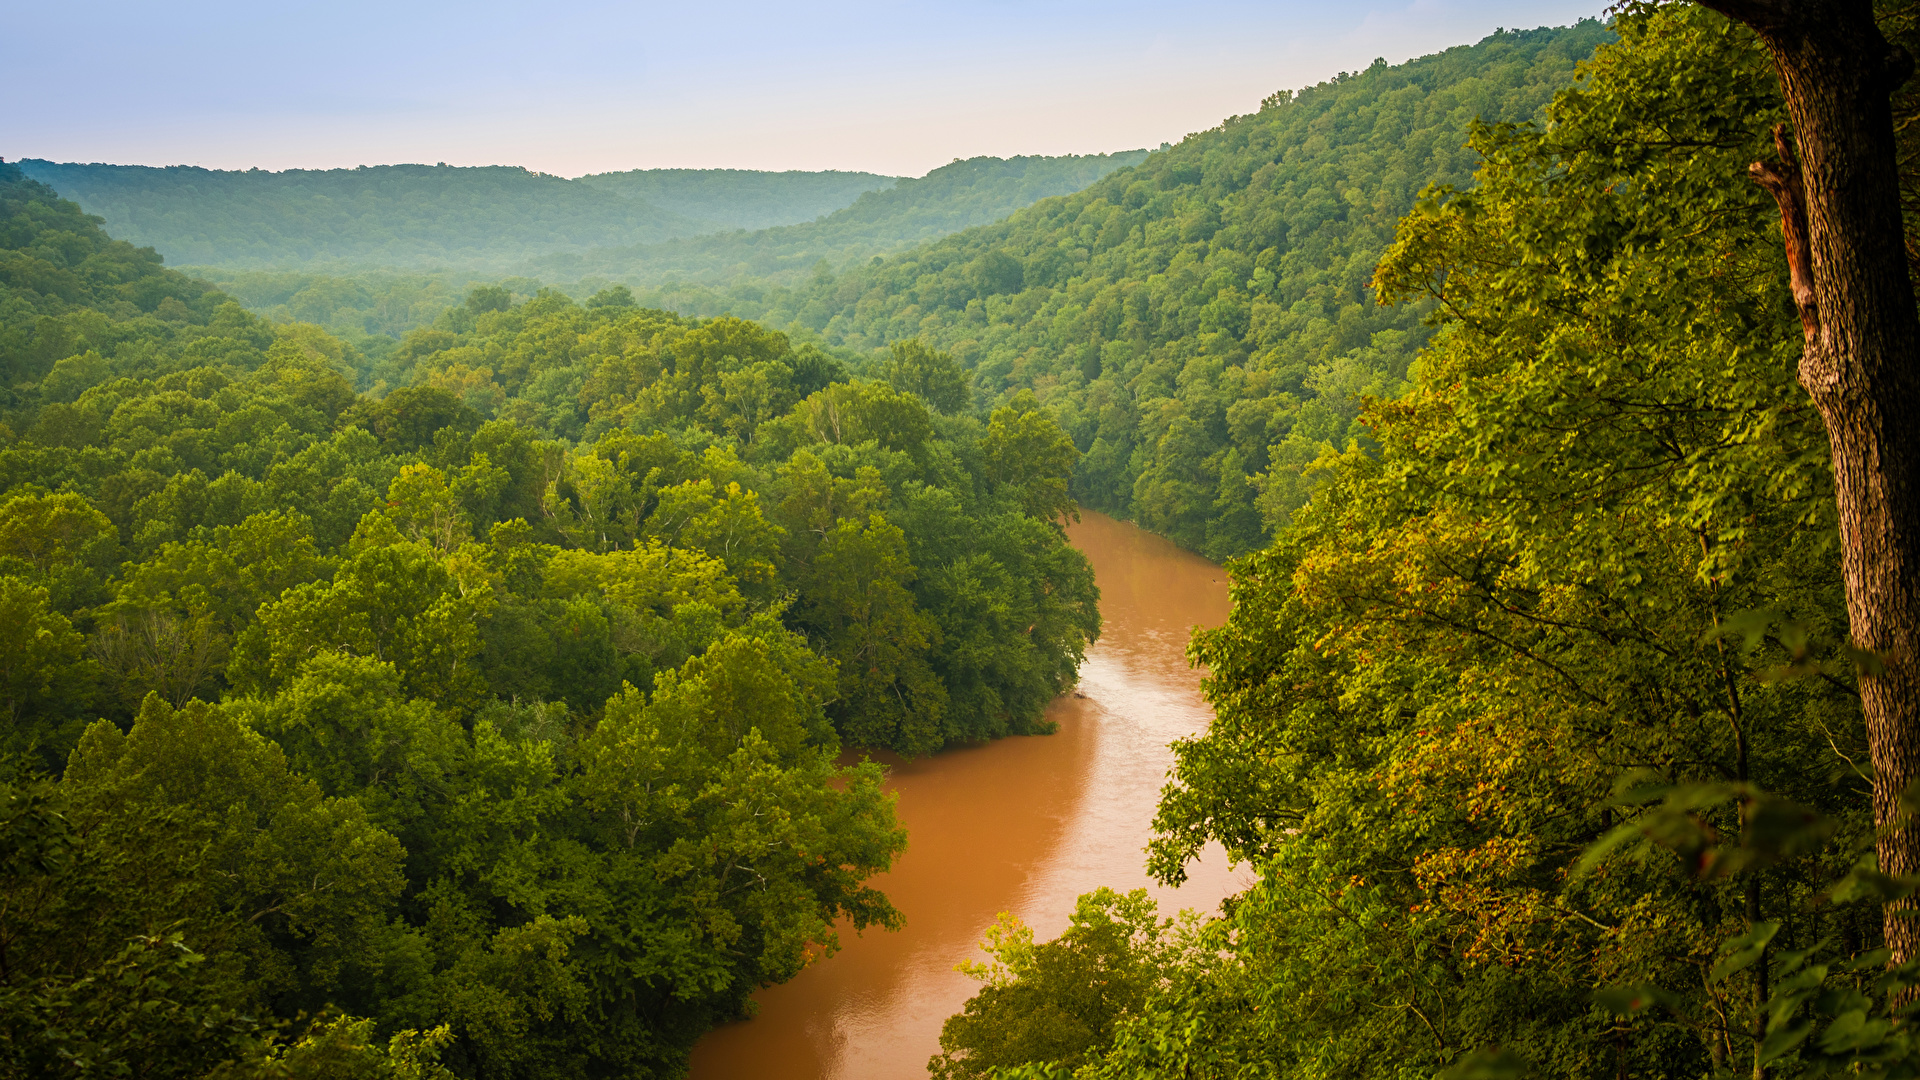 Images USA Mammoth Cave National Park Nature Parks Forests 1920x1080 1920x1080